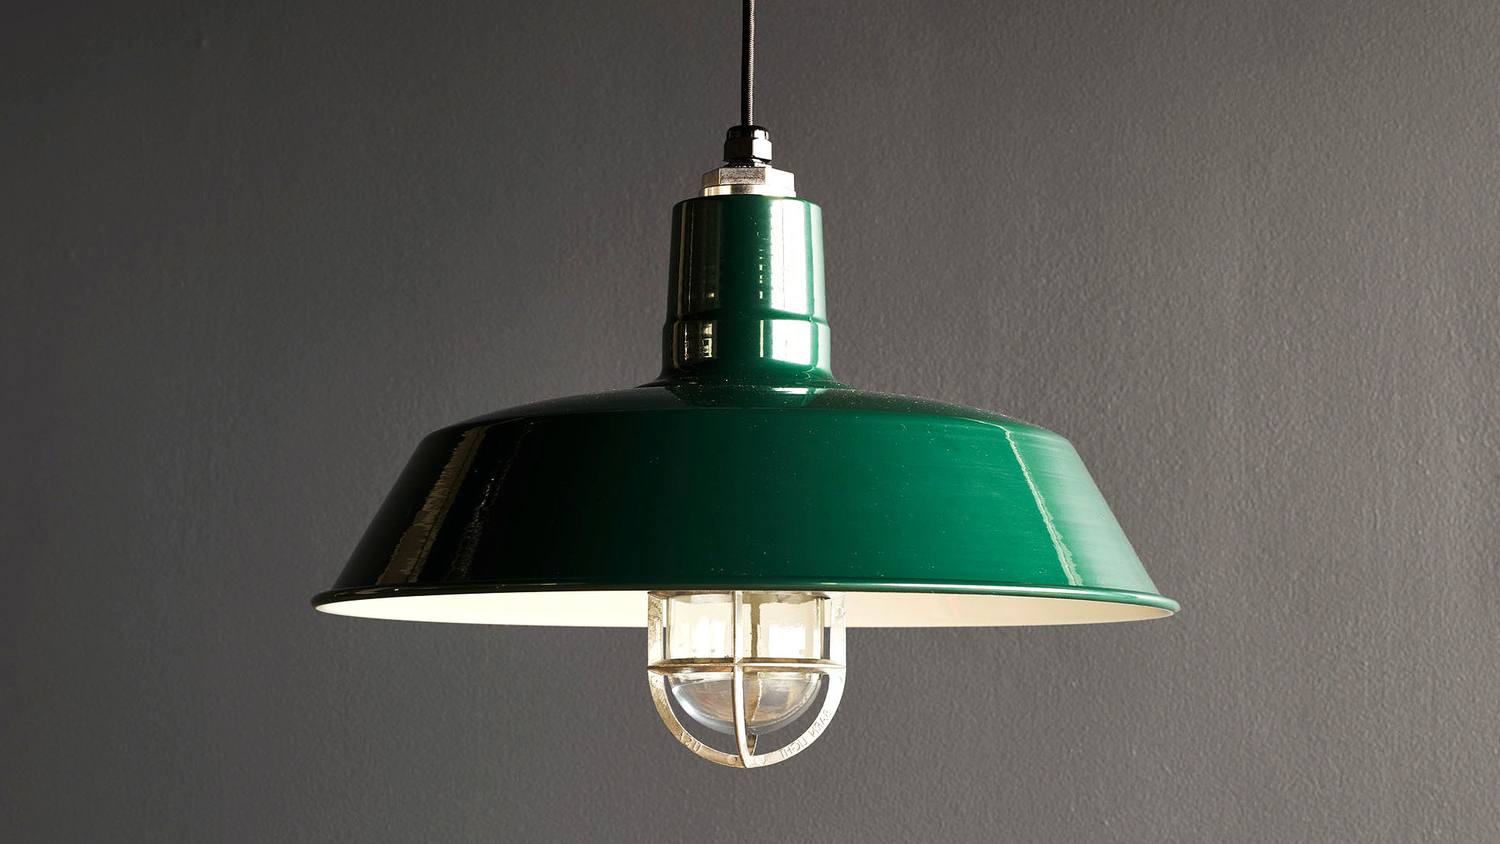 Special Prices On Hamilton 1 Light Single Dome Pendant In Fashionable Hamilton 1 Light Single Dome Pendants (View 21 of 25)